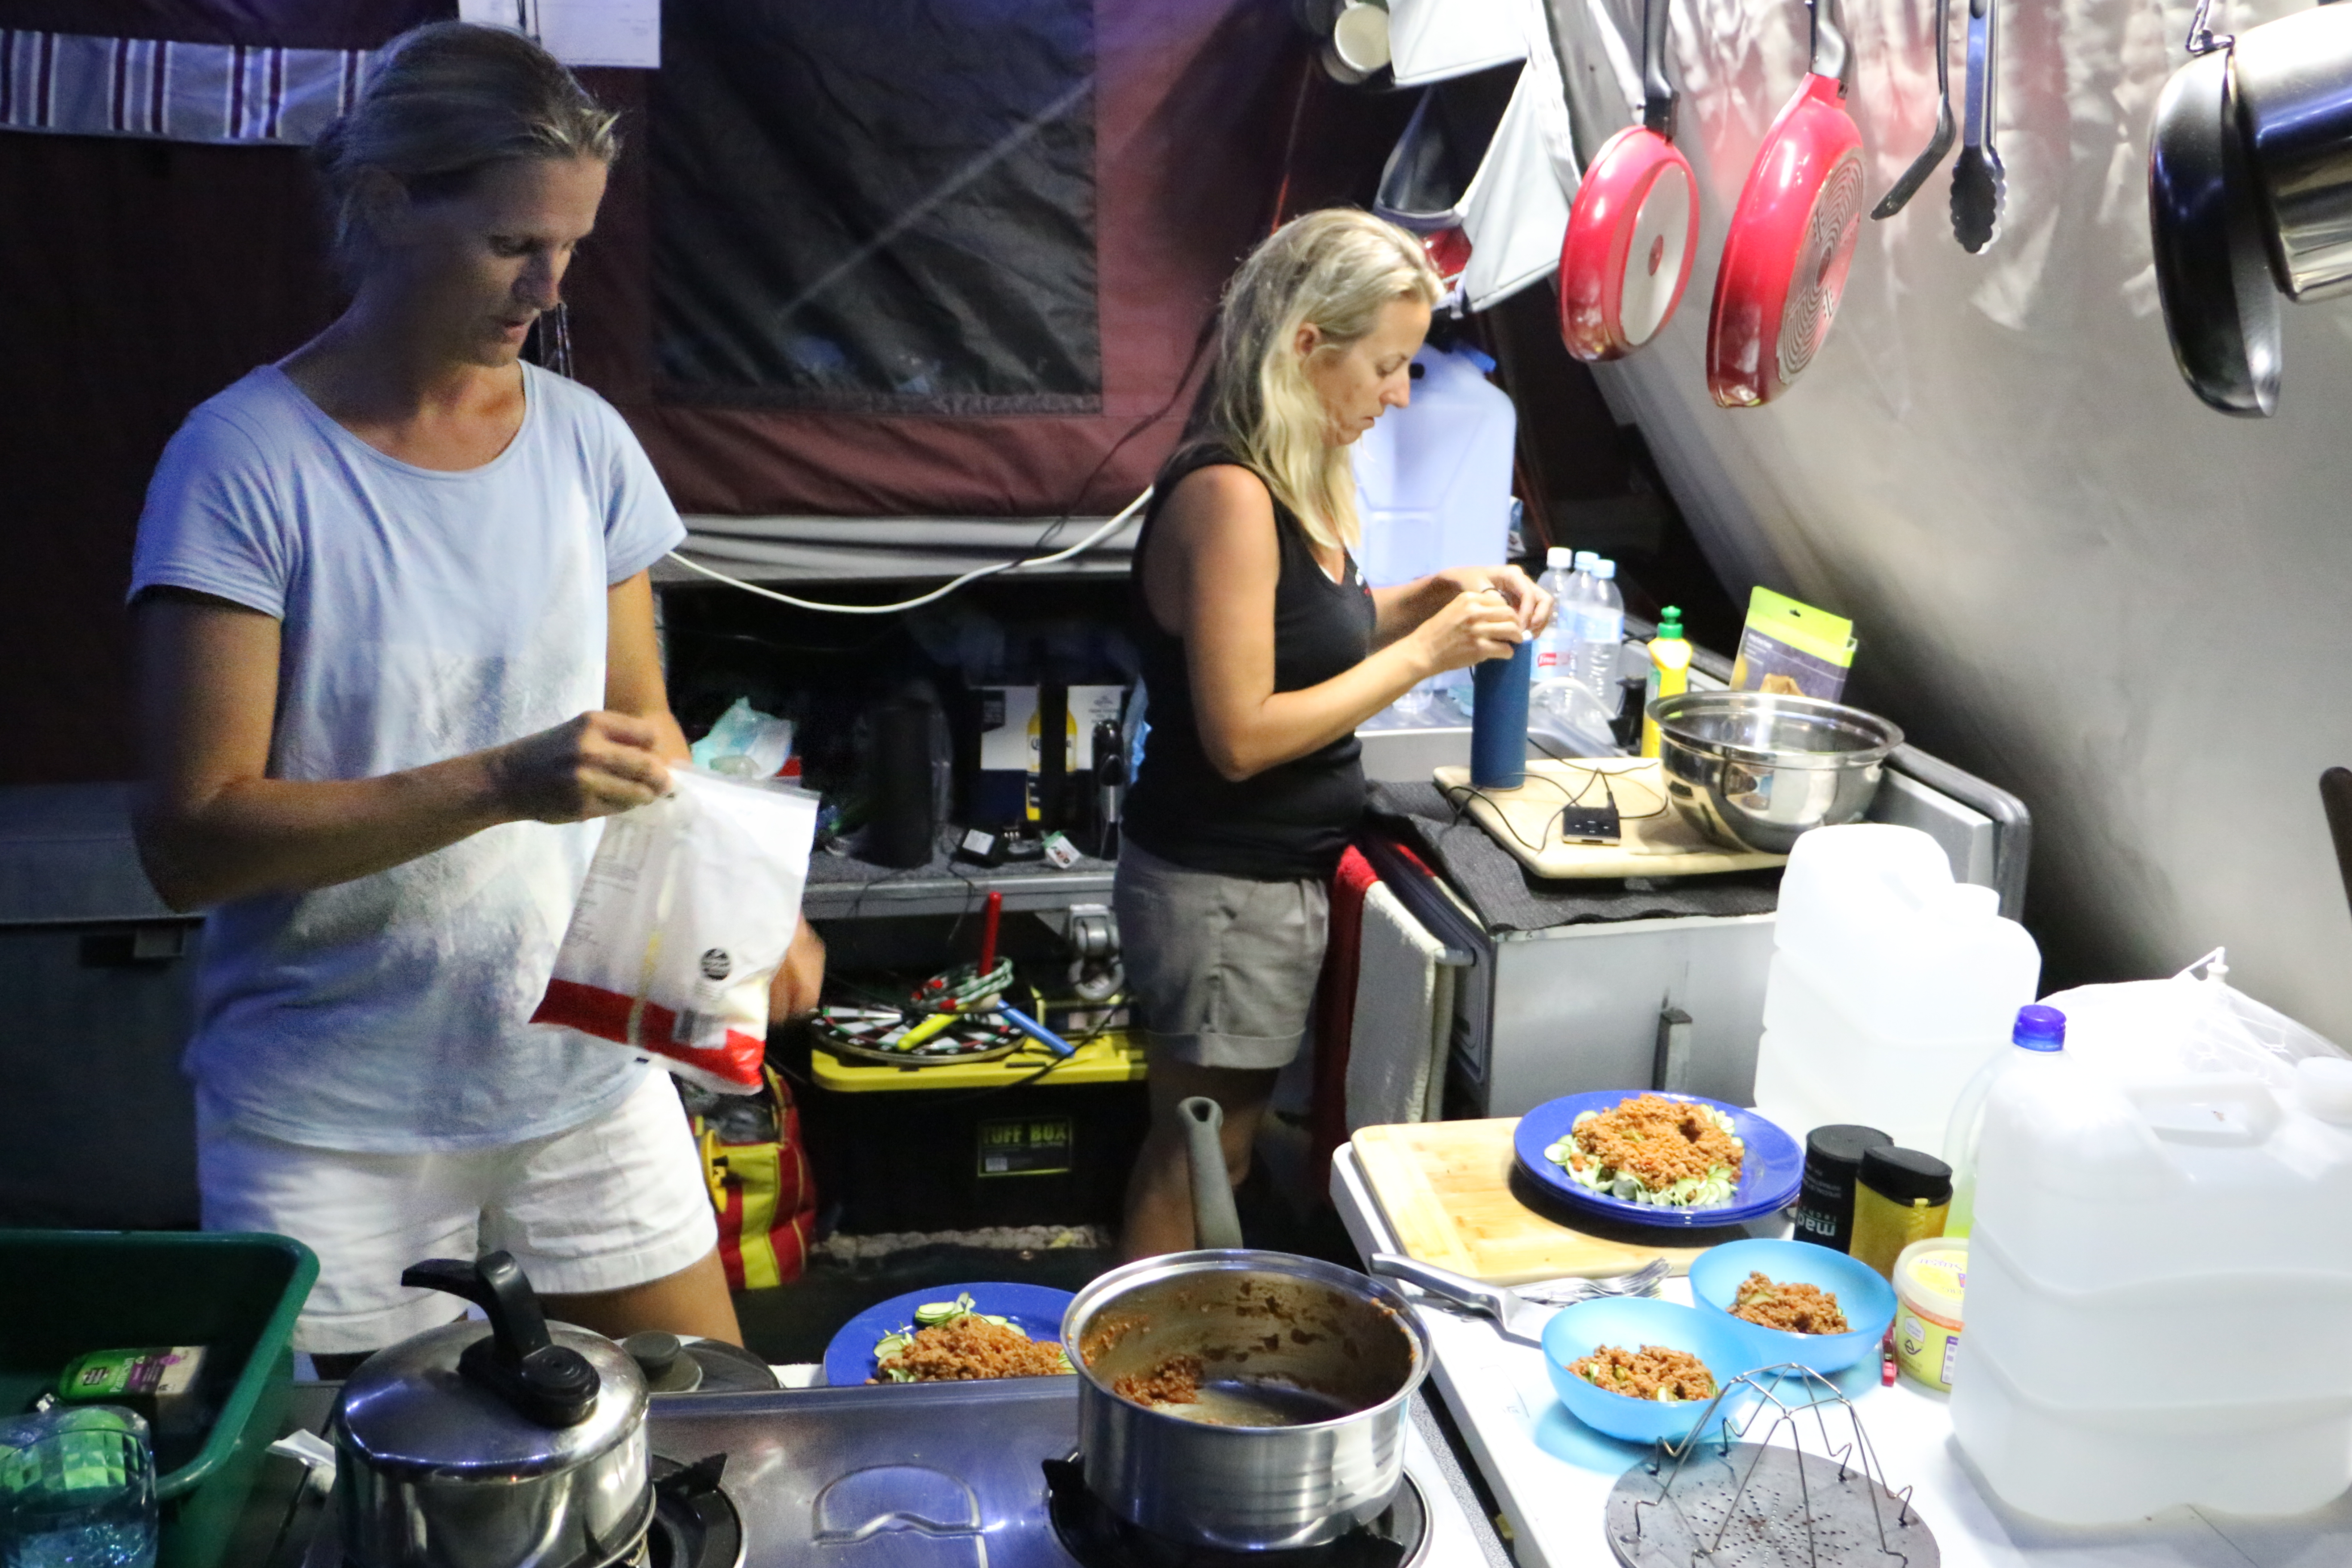 4wd travel - Camper Kitchen